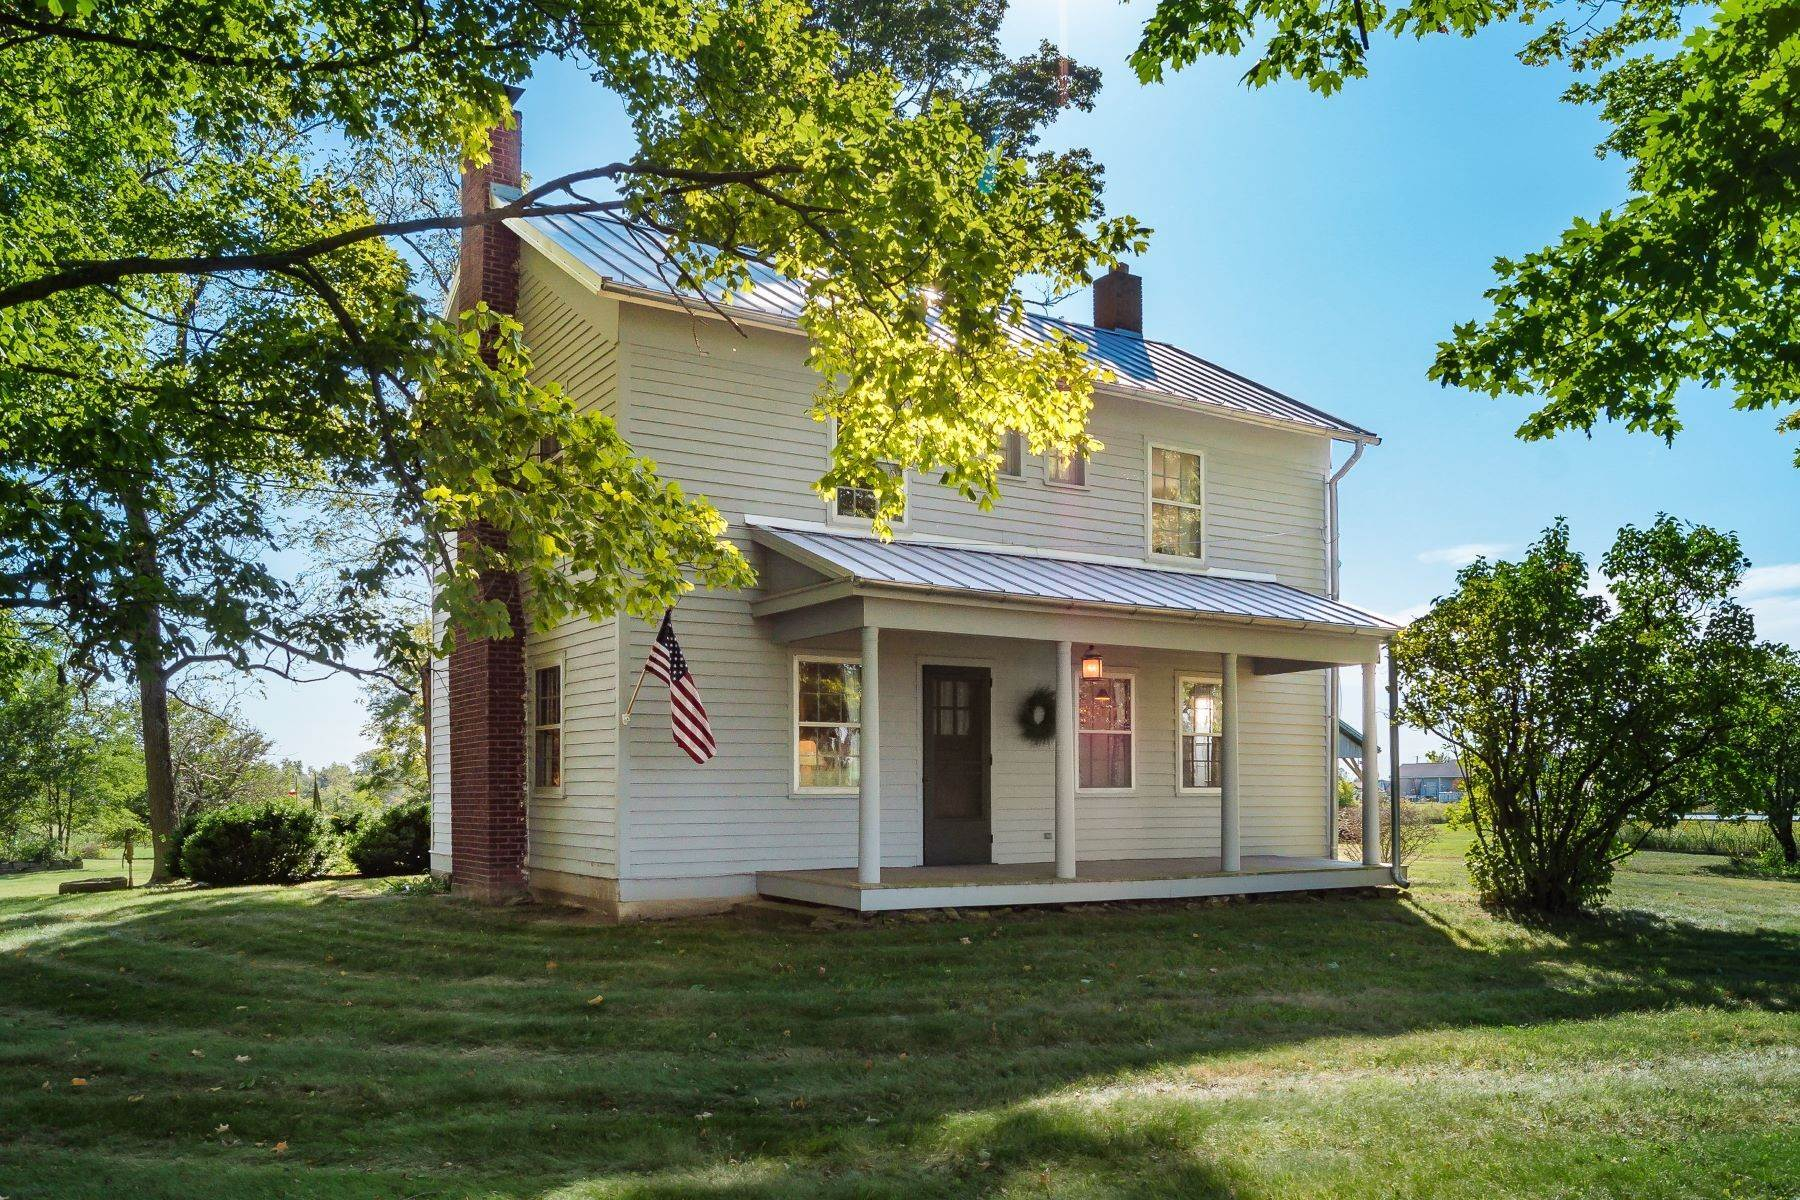 Farm and Ranch Properties for Sale at 5857 OH-19 5857 State Route 19 Galion, Ohio 44833 United States